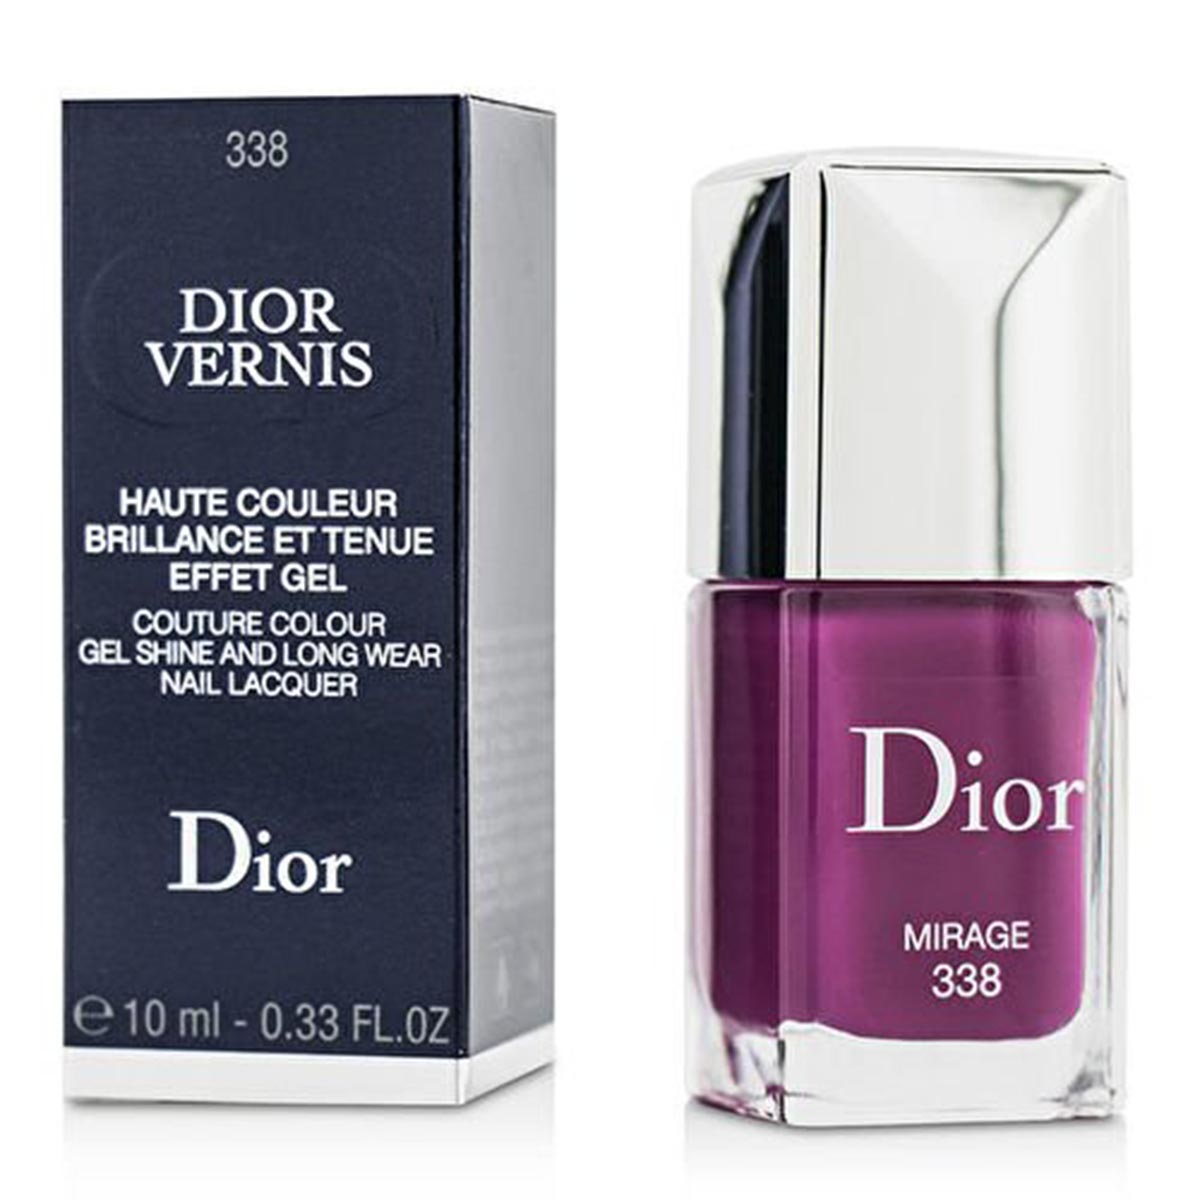 Dior vernis nail lacquer 338 mirage